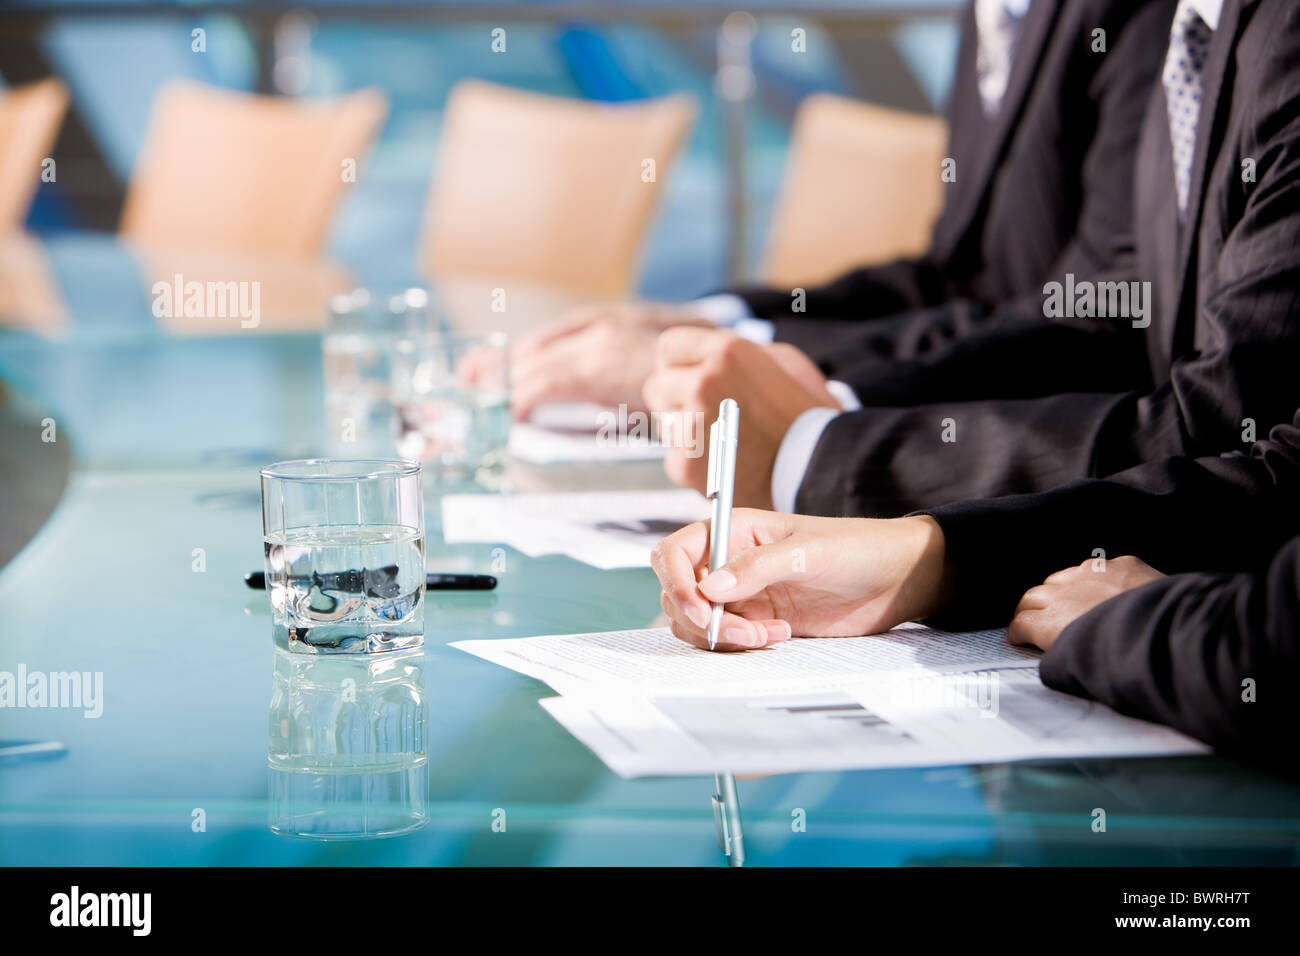 Row of human hands holding pen and making notes with glass of water near by - Stock Image